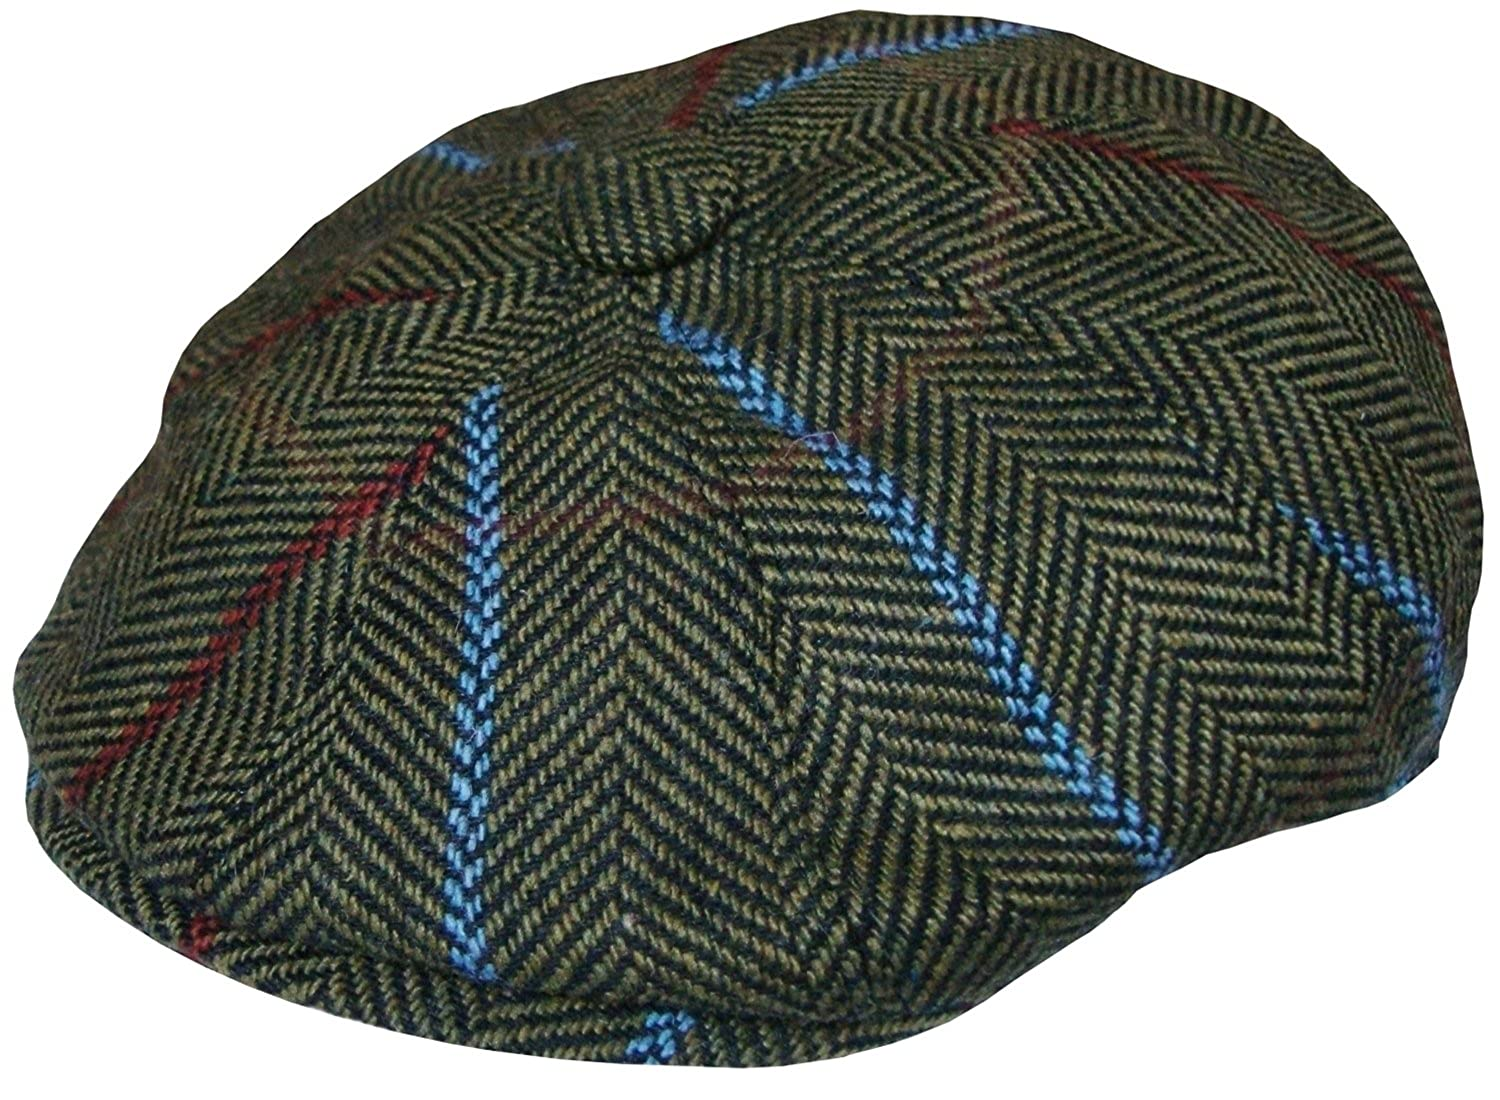 59a79b6d Mens Baker Boy Cap Peaked Country Flat Caps Herringbone Gatsby Hat Blue or  Green: Amazon.co.uk: Clothing